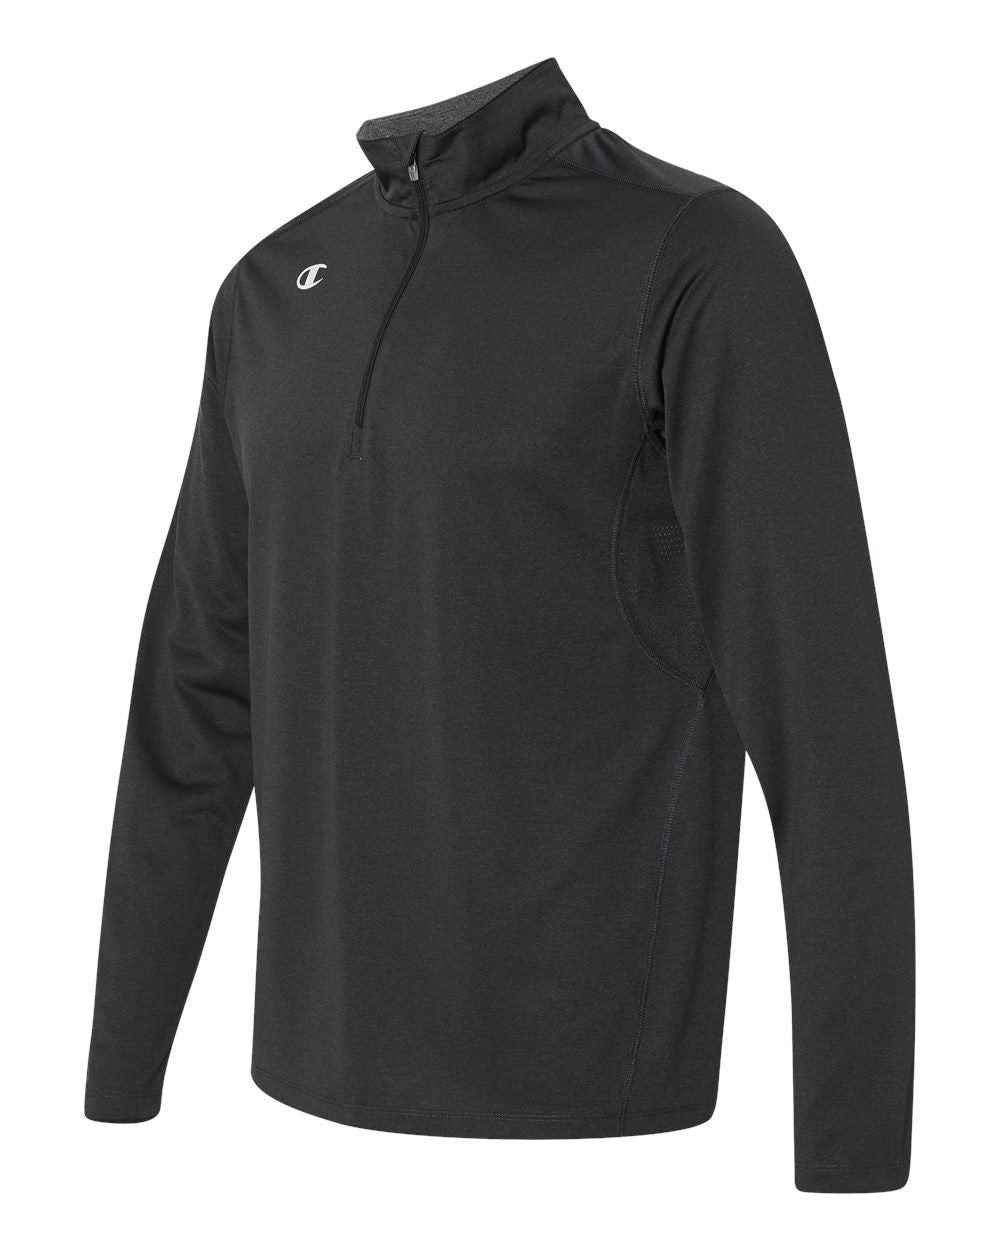 Vapor Performance Quarter-Zip Pullover by Champion